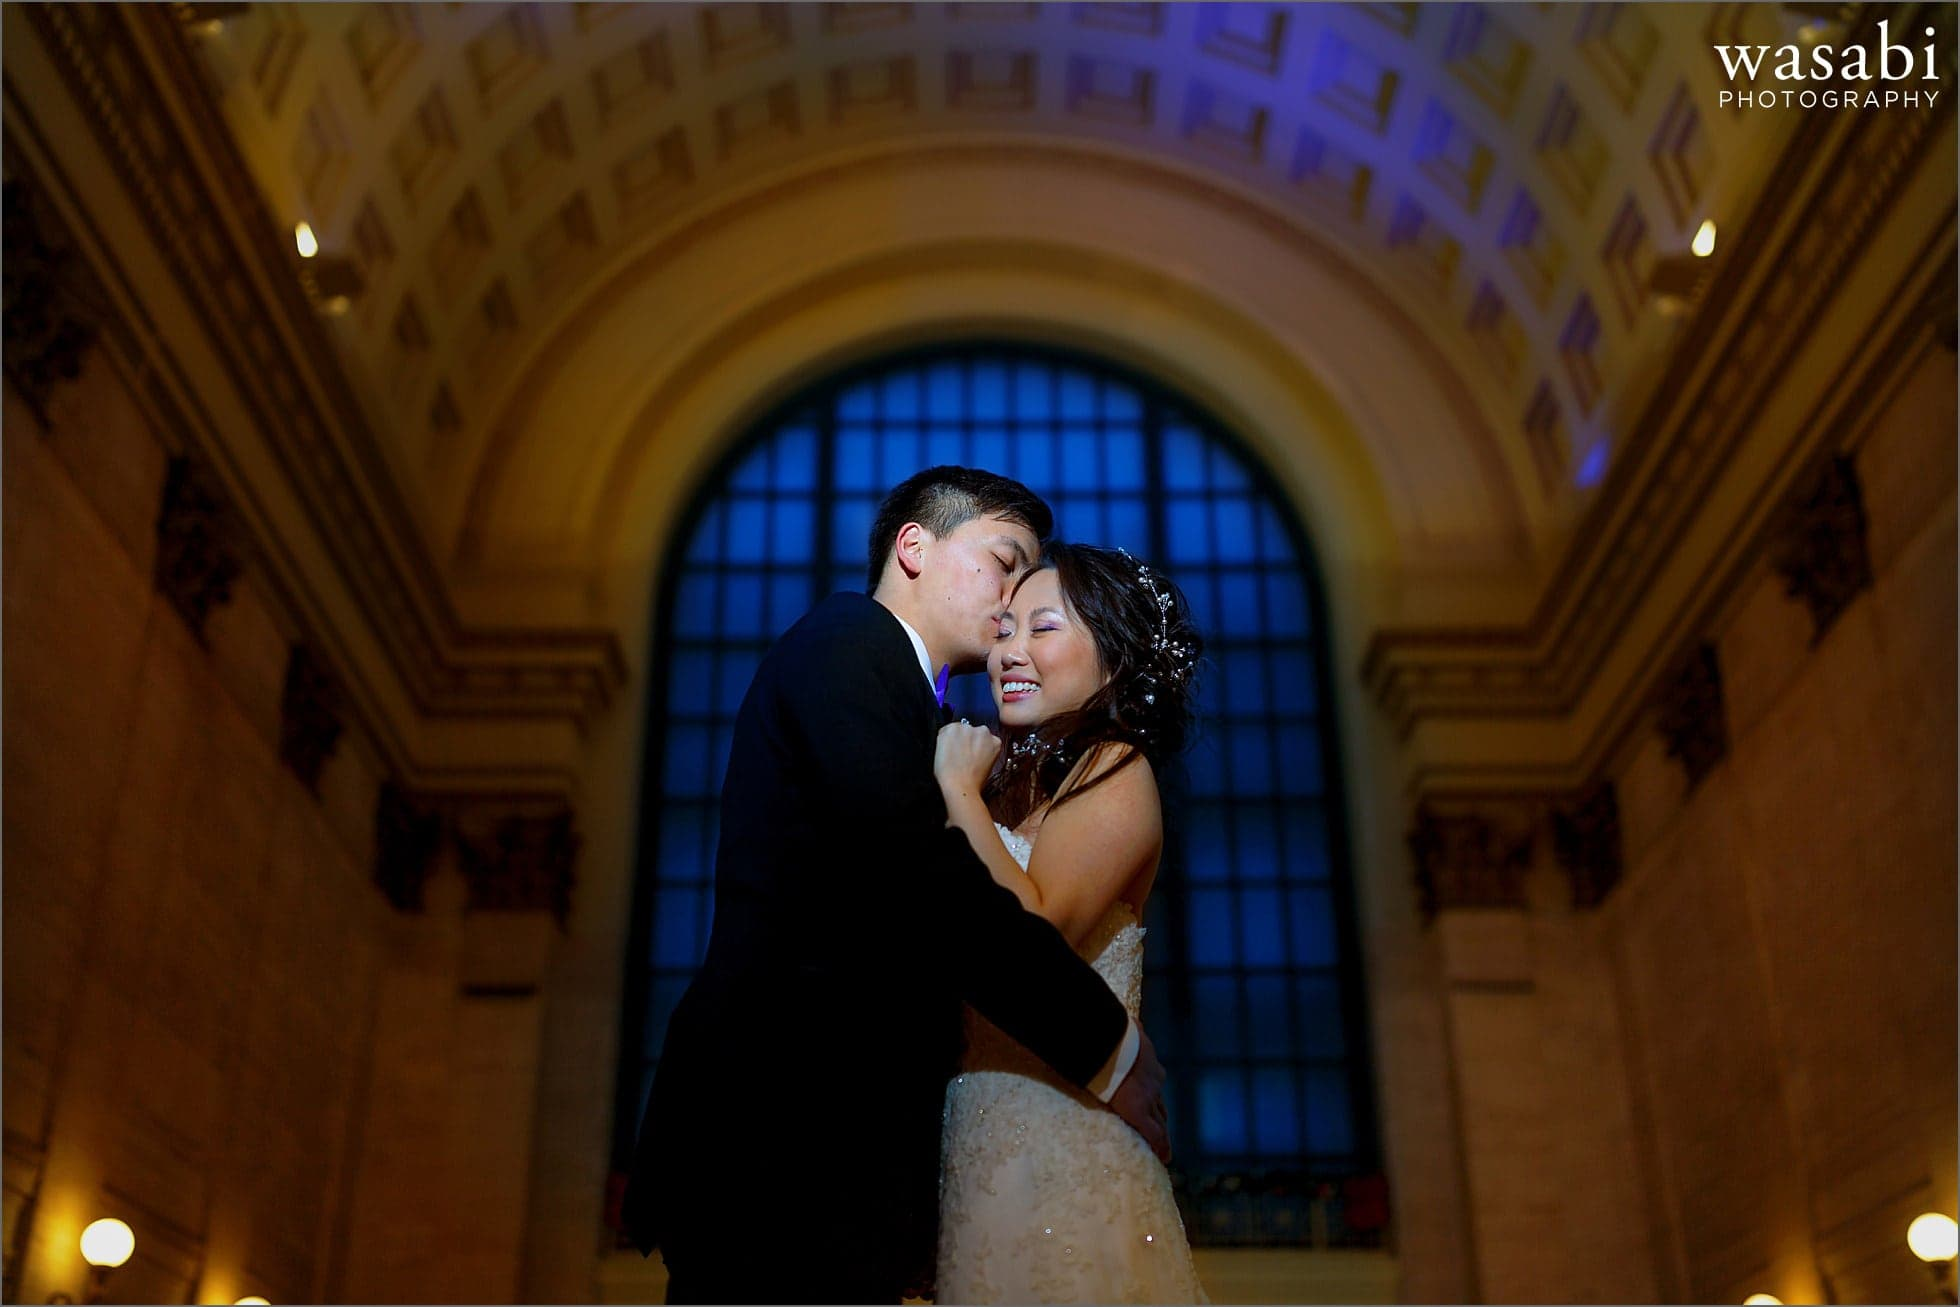 indoor lit portrait of bride and groom at Union Station in Chicago